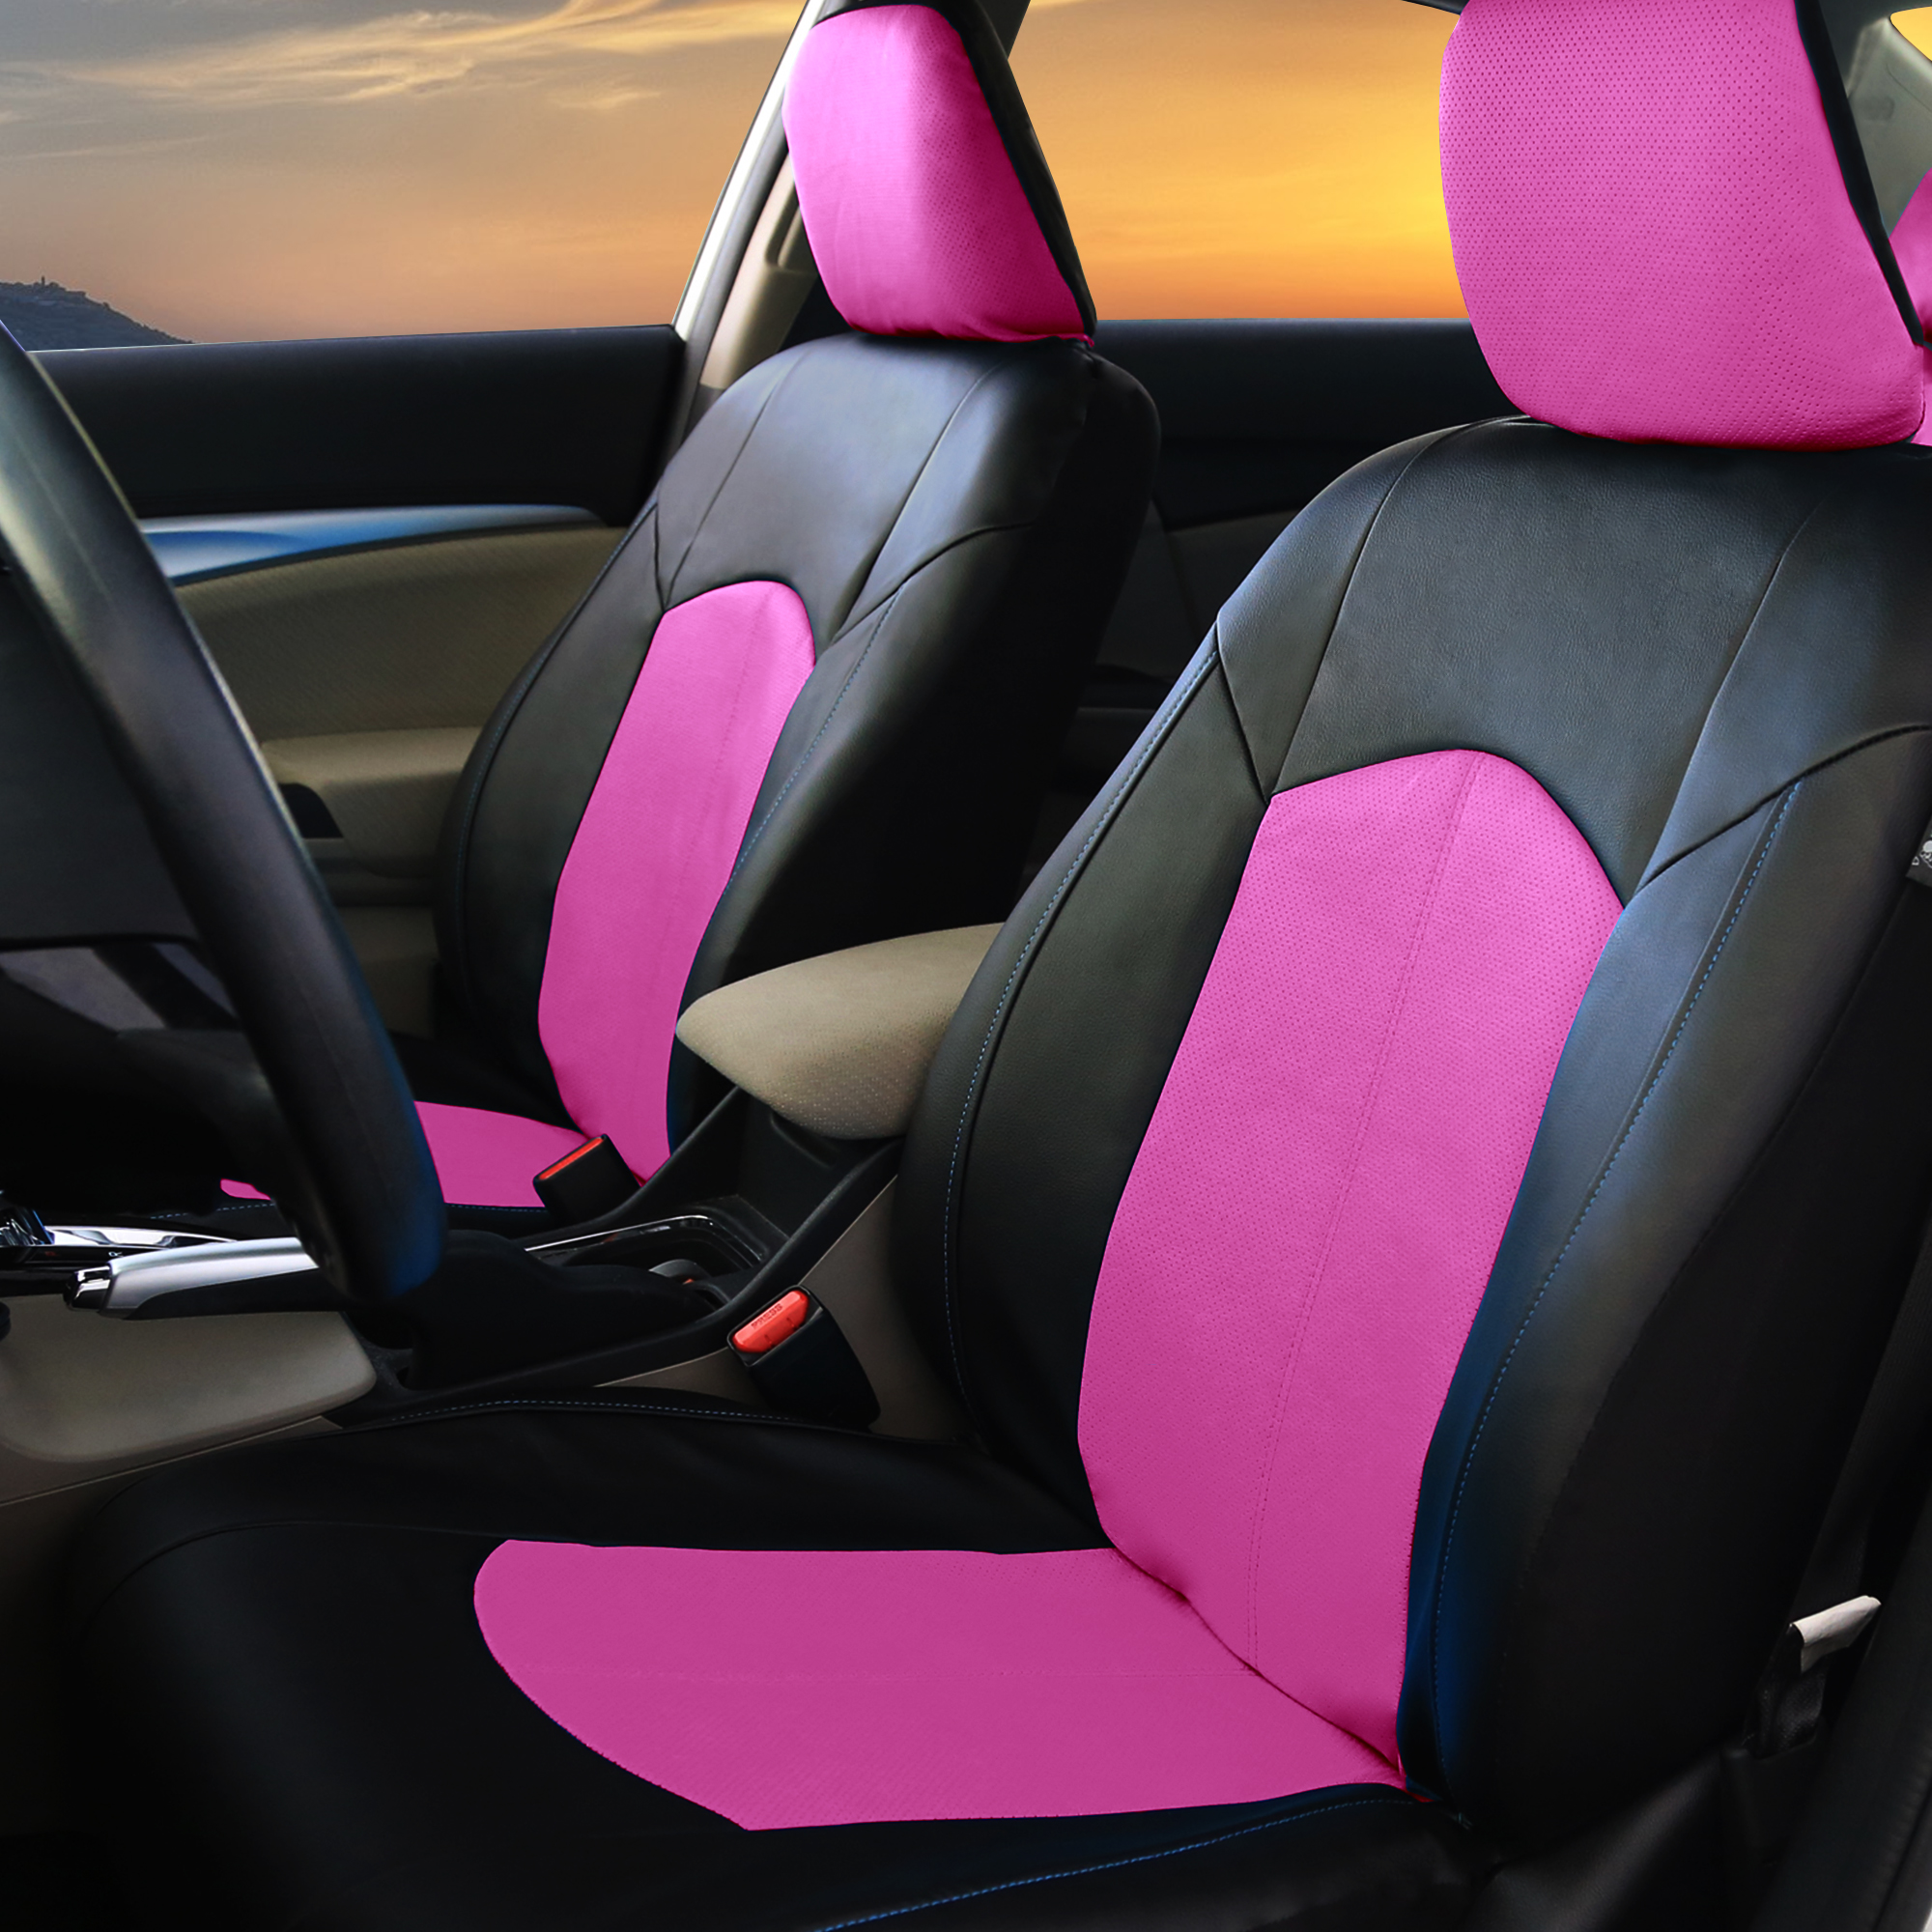 Pu Leather Car Seat Covers For Auto Pink Black 5 Headrests Black